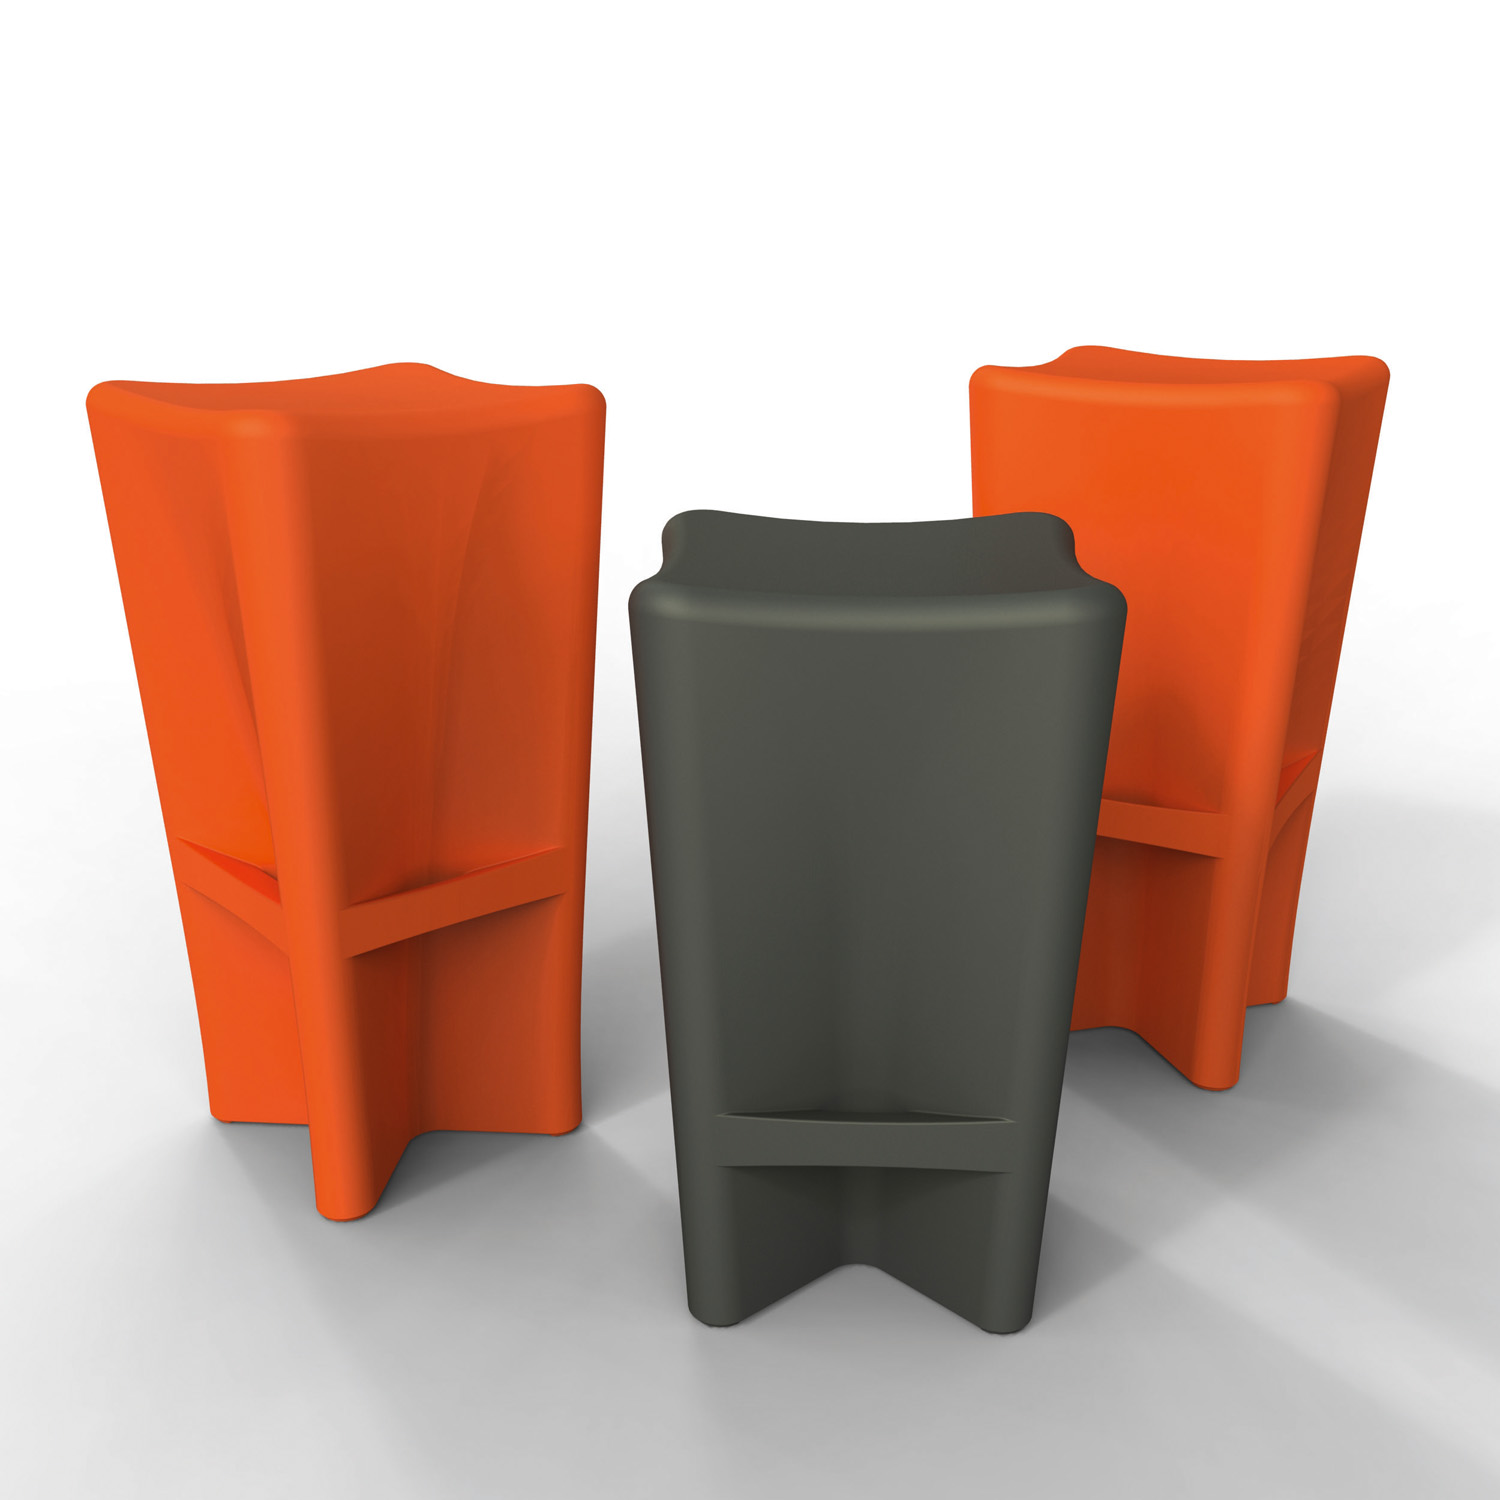 Versatile and stackable Pinch 66 and 77 bar stools from Anon & Co www.anonandco.com